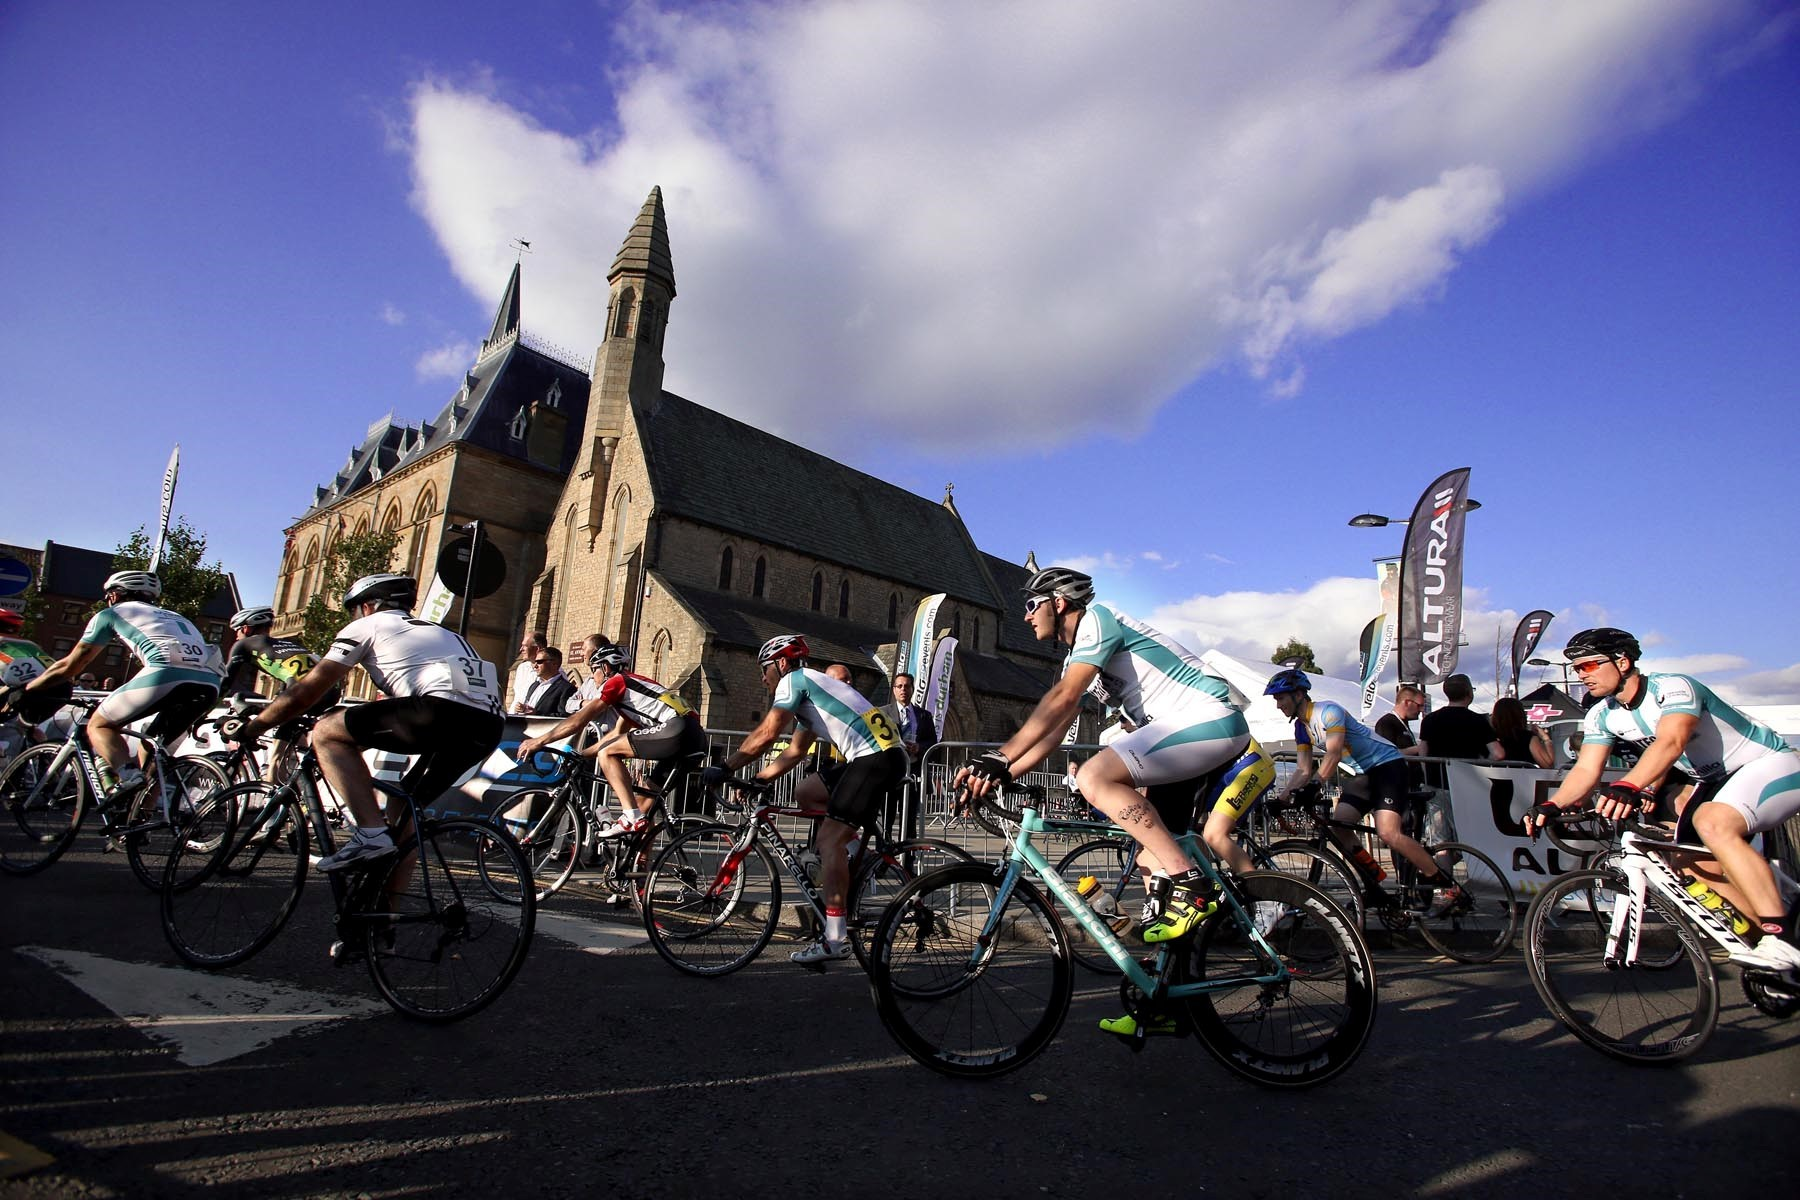 Bishop Auckland cycling event hailed a success